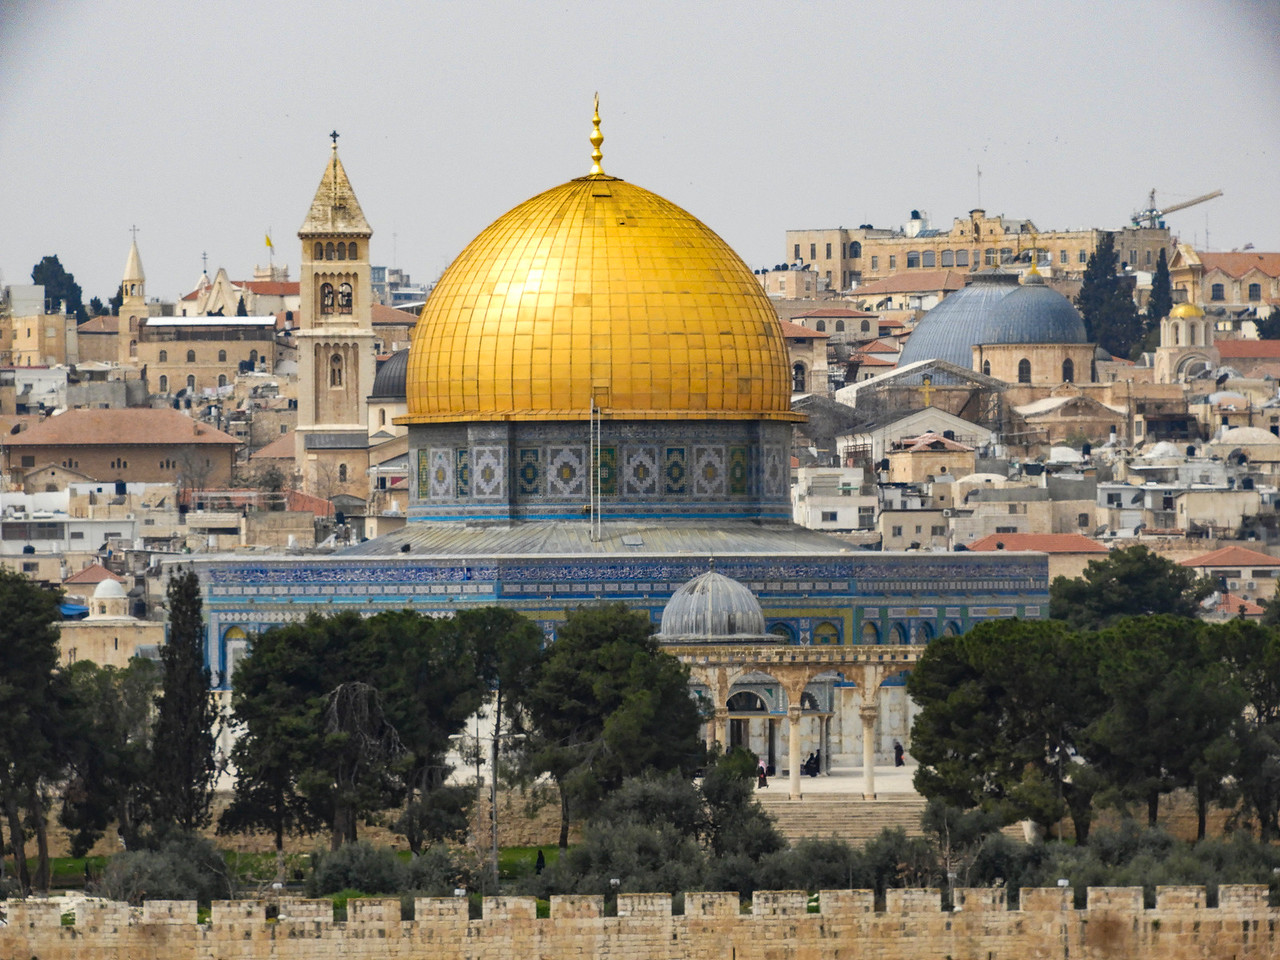 Dome of the Rock, Church of the Holy Sepulchre